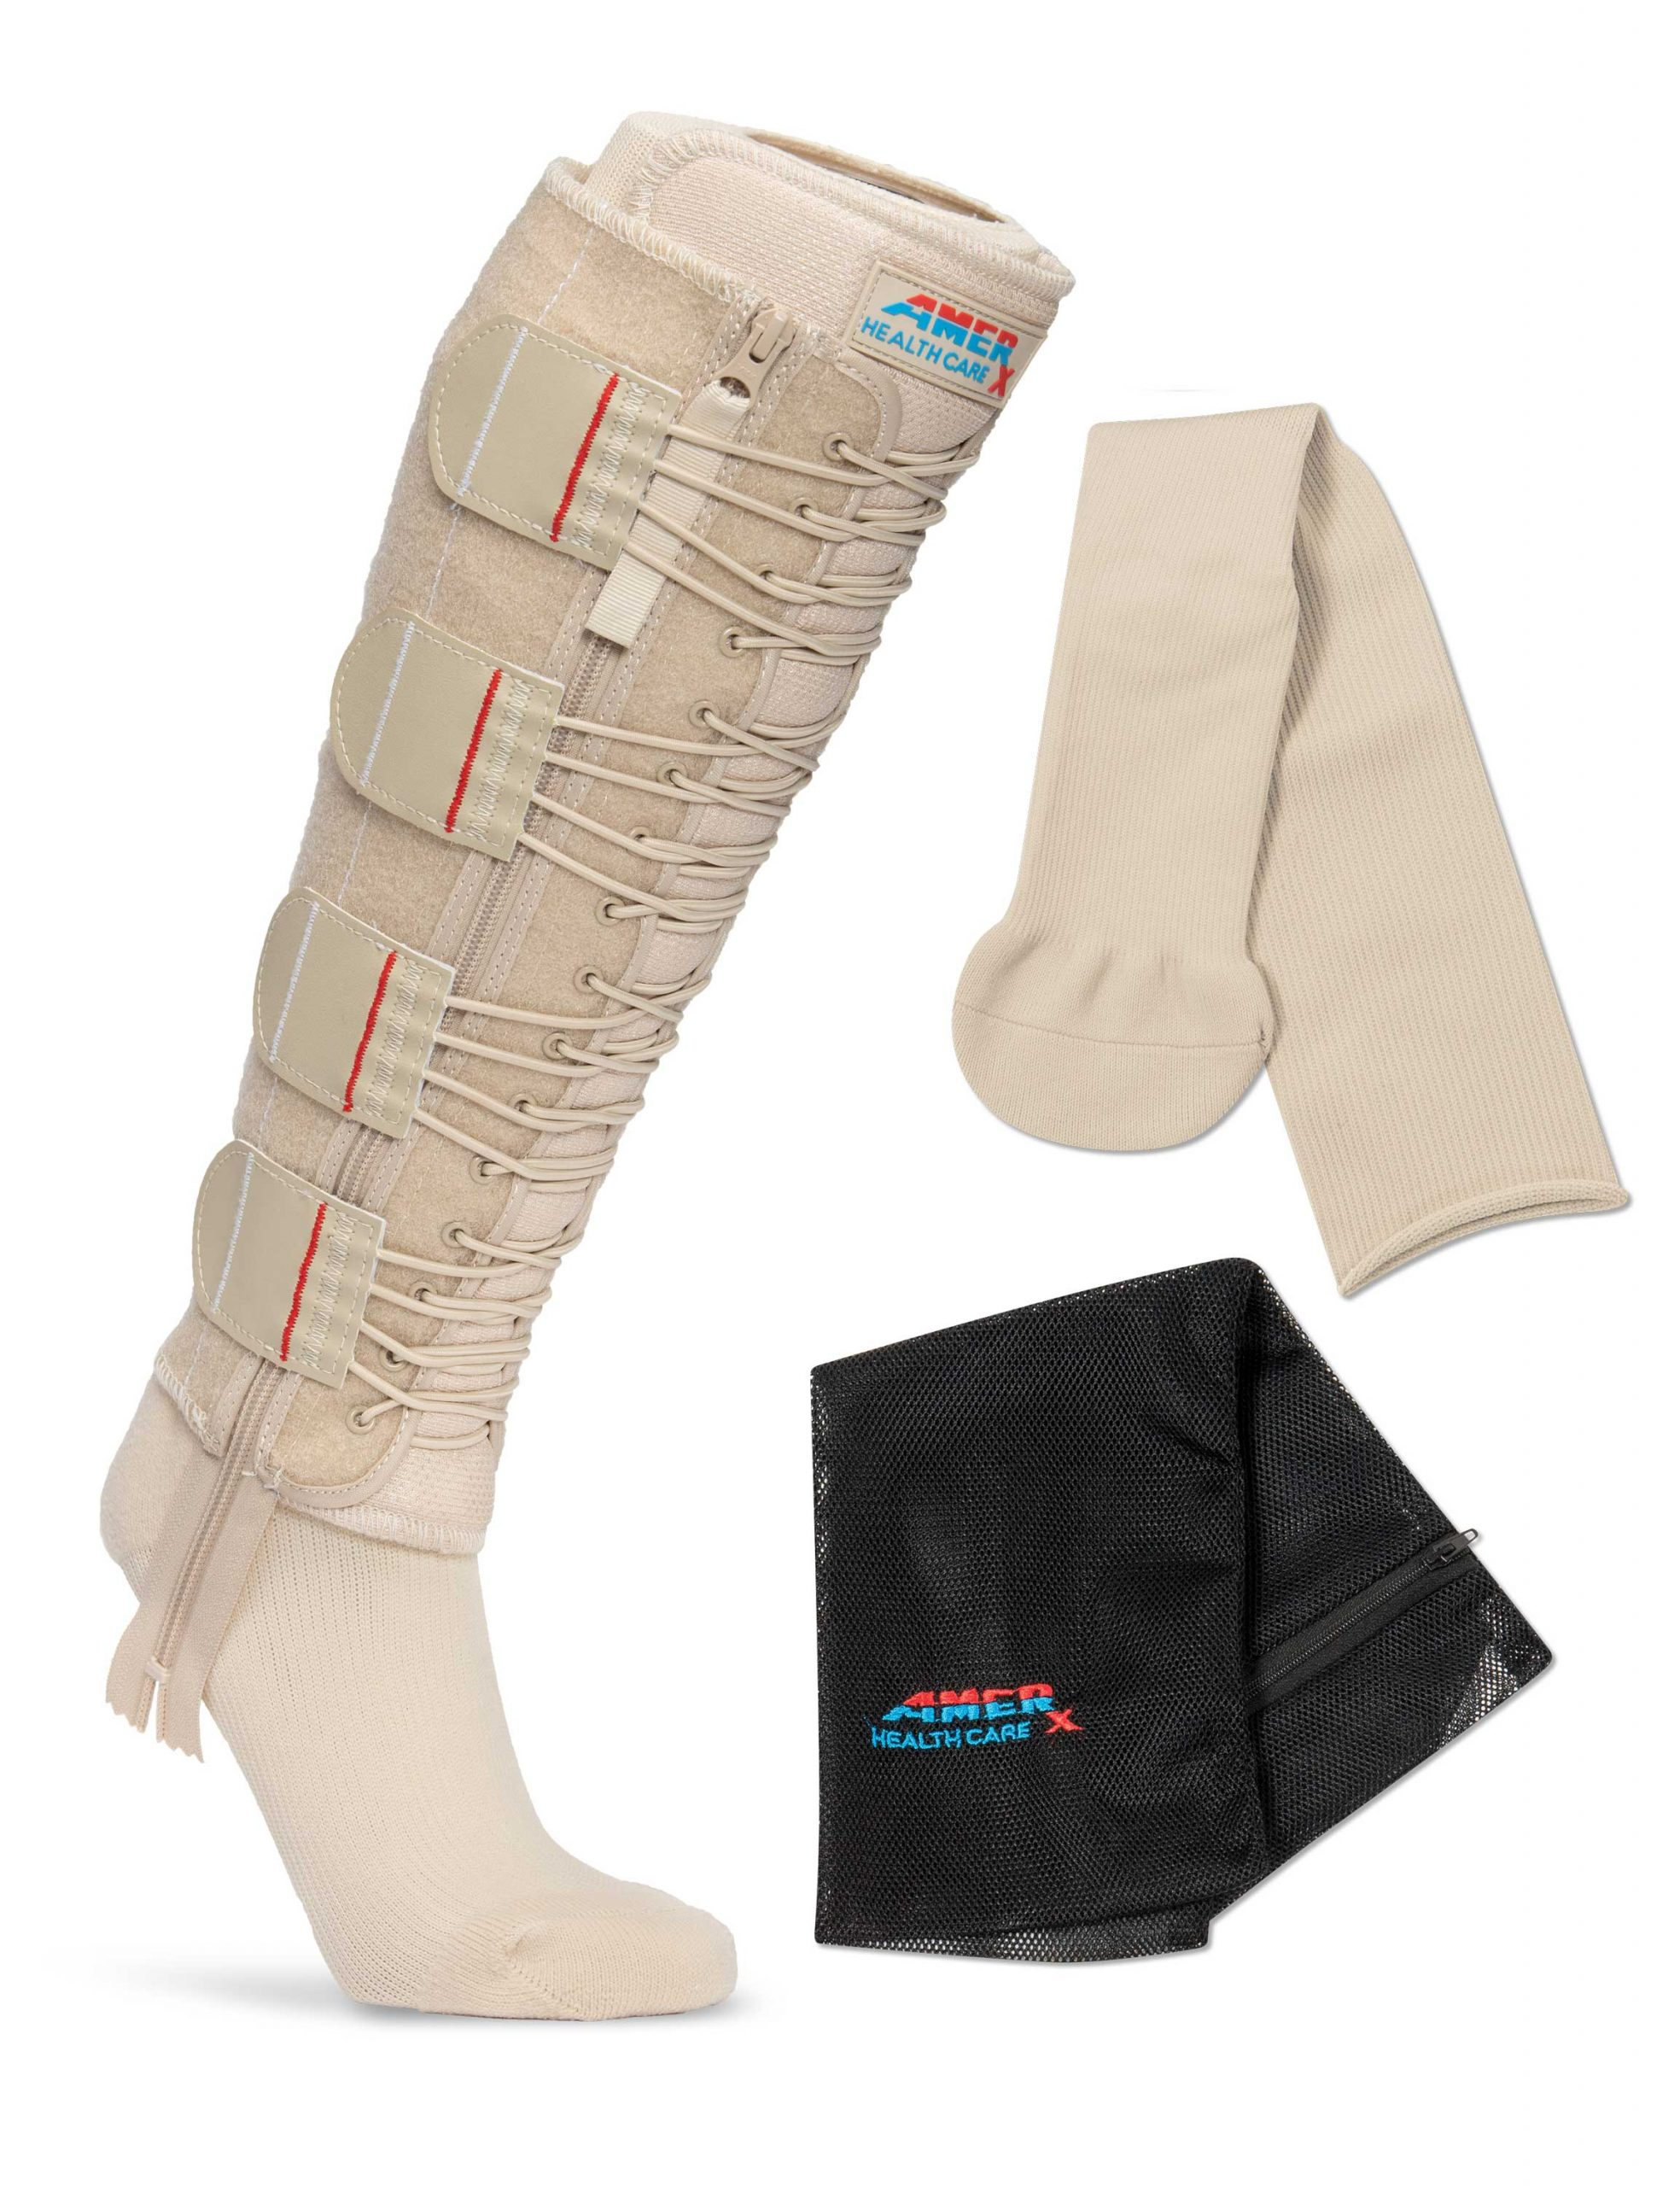 Tan EXTREMIT-EASE Compression Garment, Tan Garment Liner, and Mesh Laundry Bag